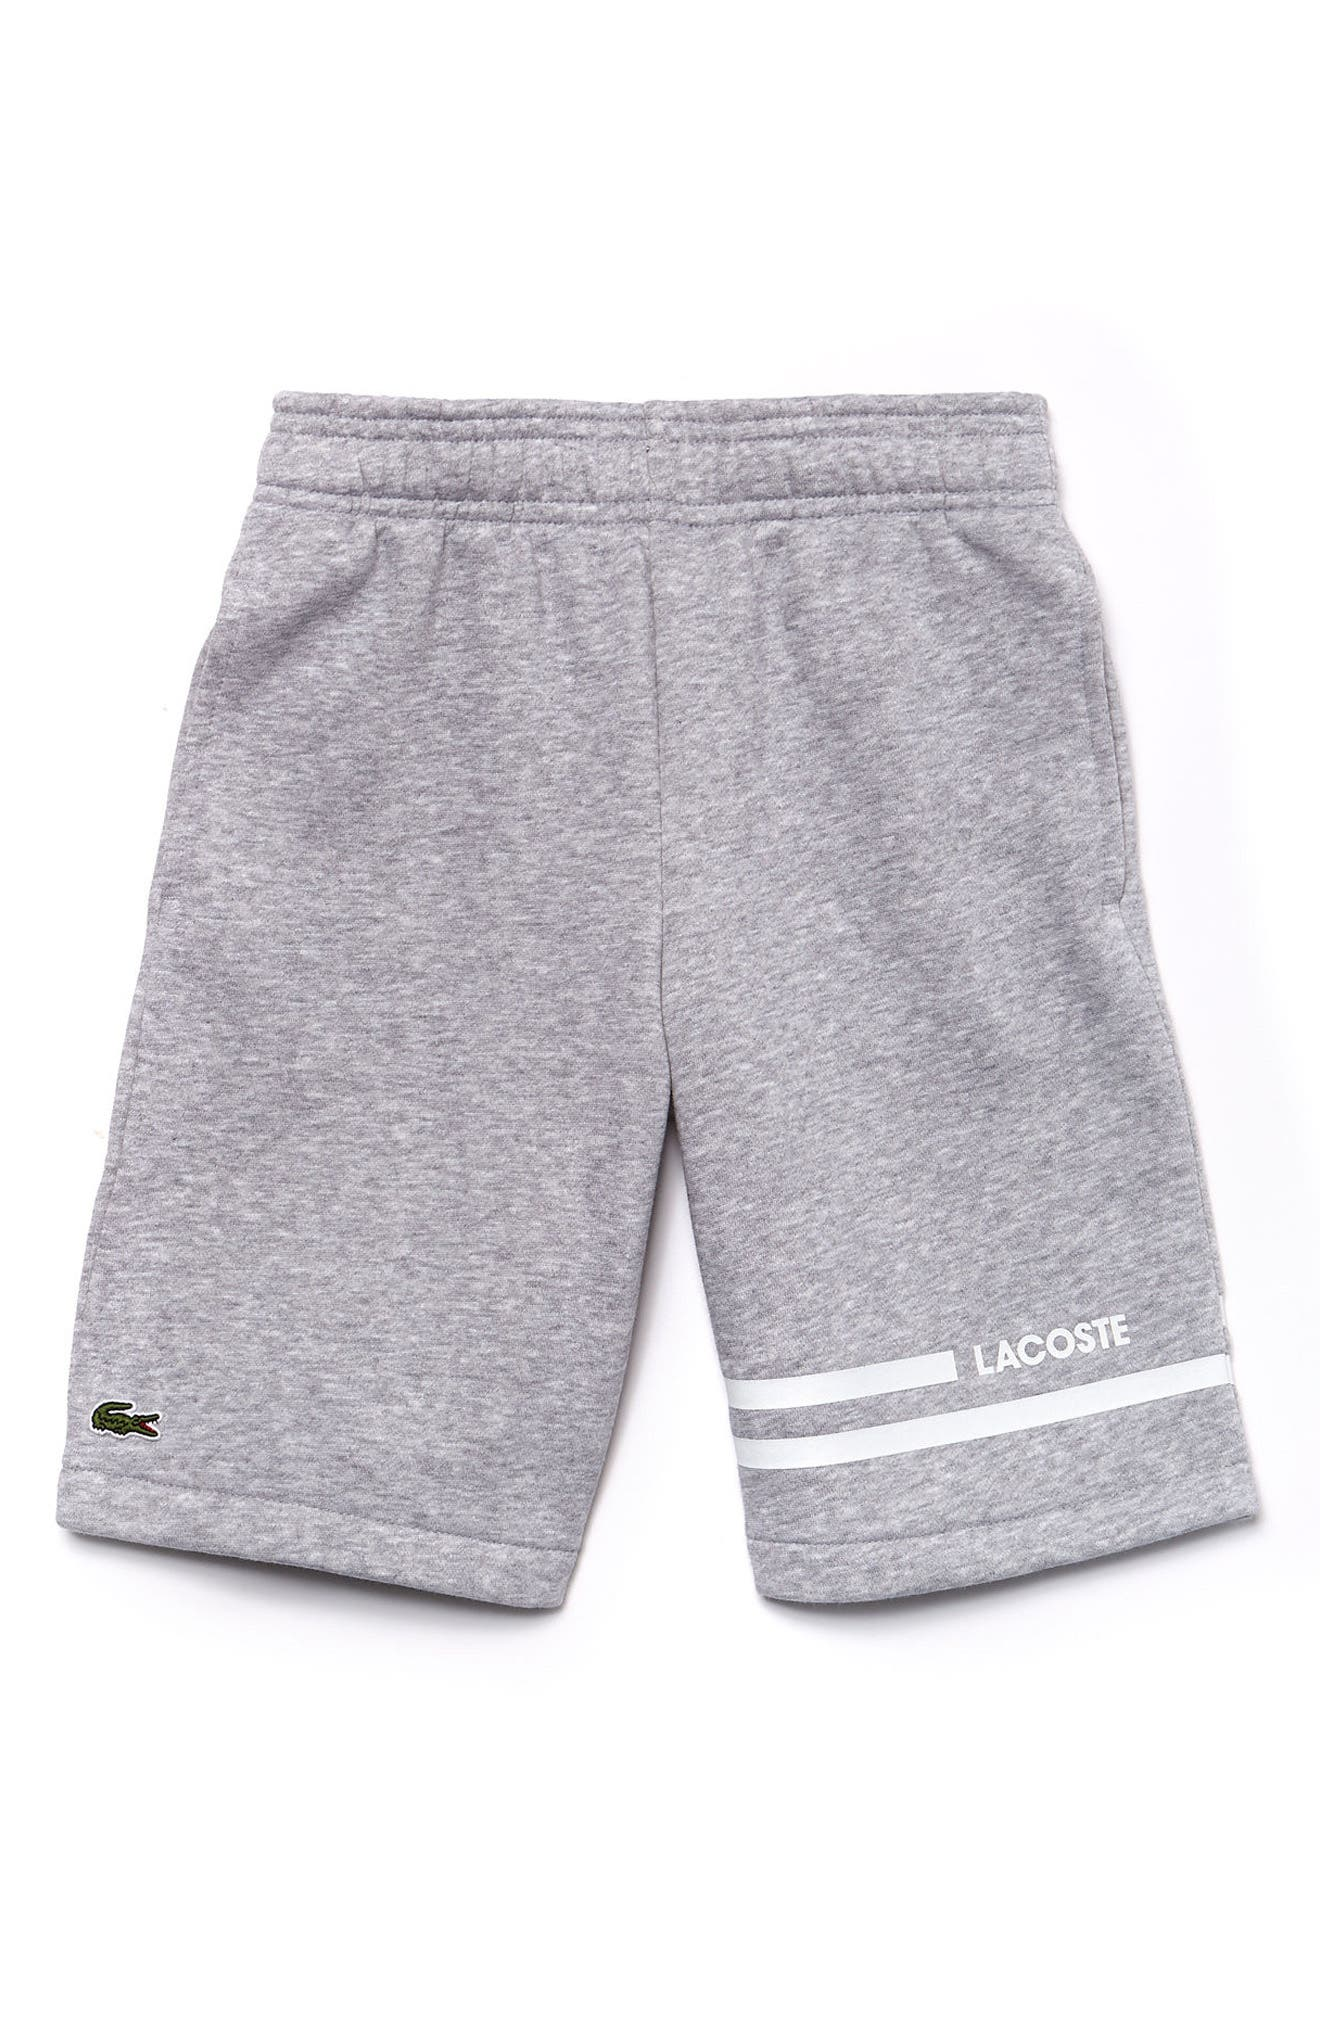 Sport Knit Shorts,                         Main,                         color, Silver Chine/ White